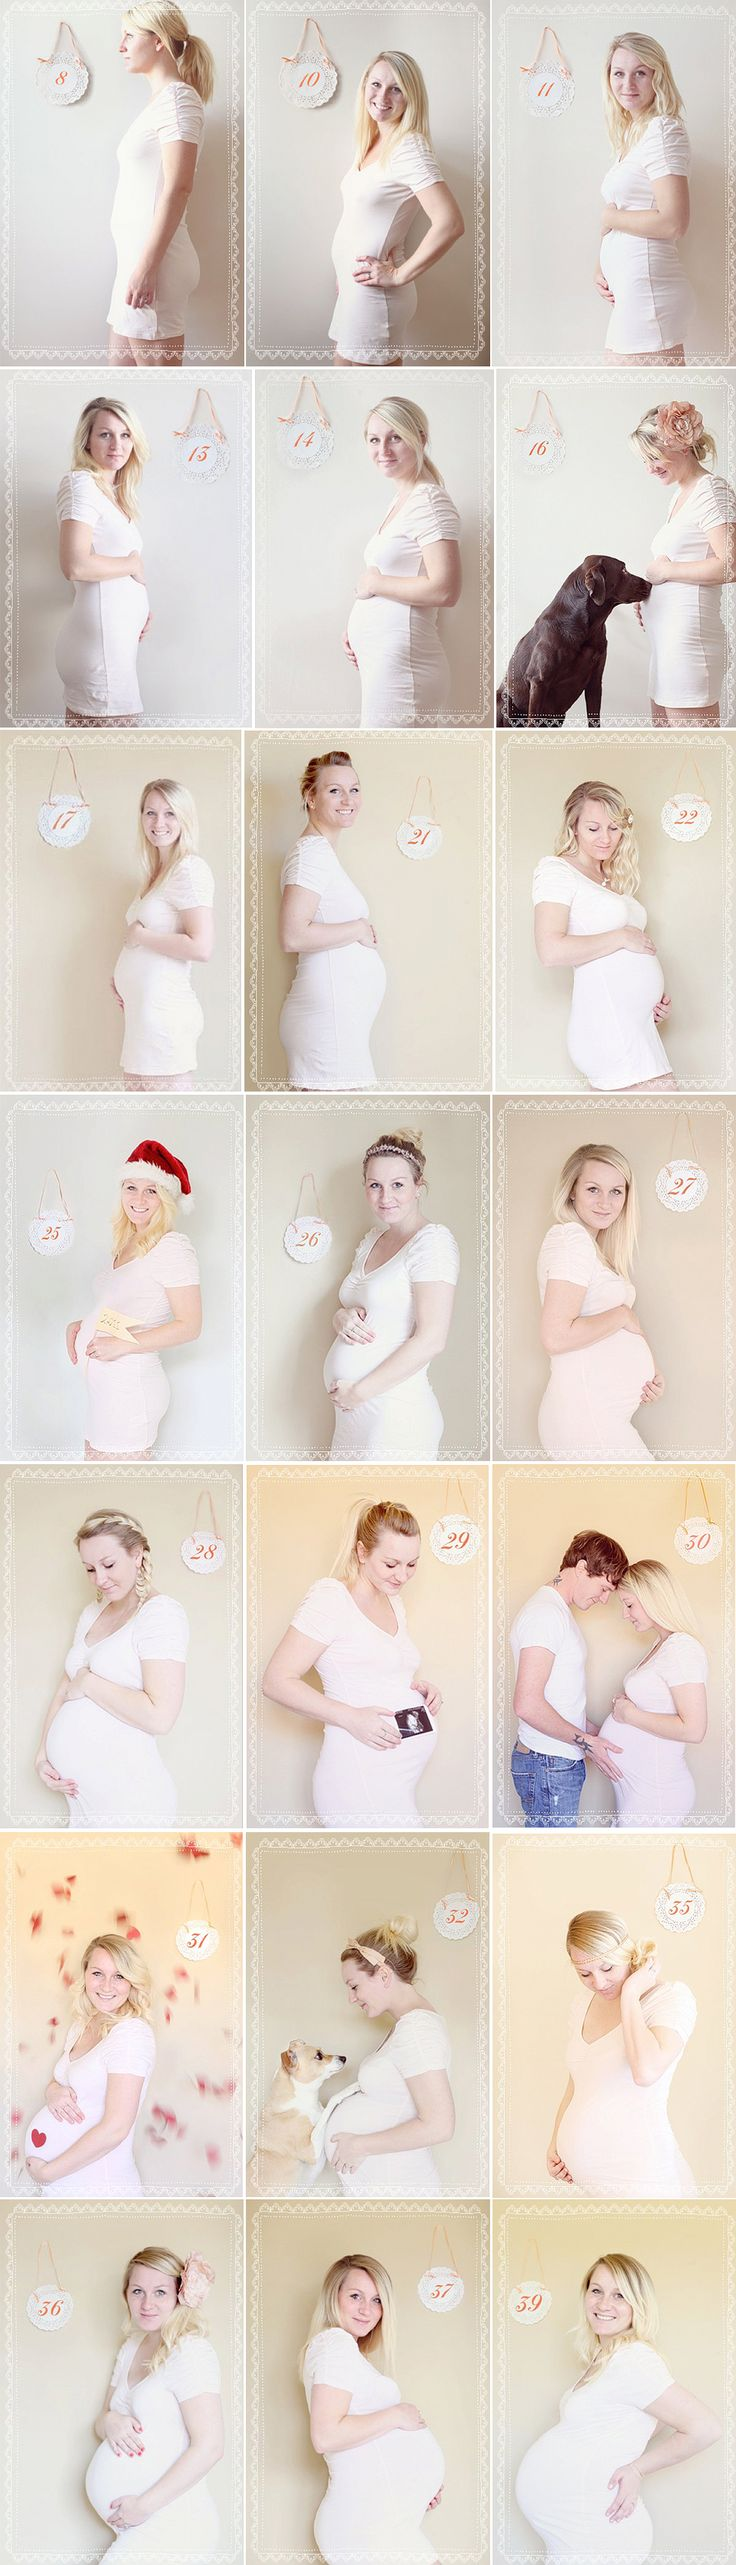 Maternity PhotosPhotos Ideas, Pregnancy Pictures, Maternity Photos, Pregnancy Photos, Maternity Pictures, Cute Ideas, Baby Bump, Pregnancy Photography, Pregnancy Pics